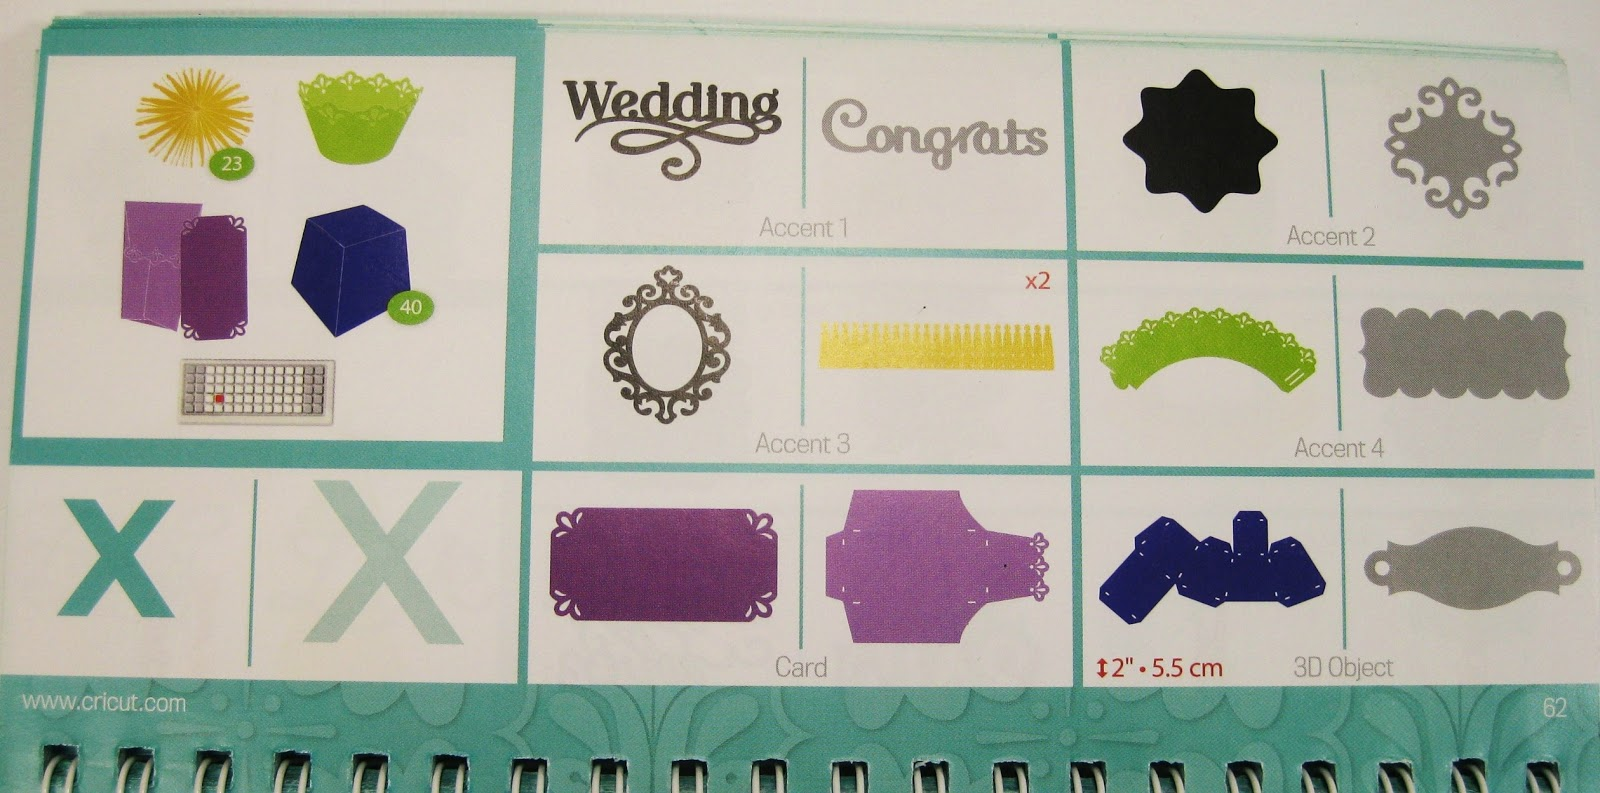 Fantabulous cricut challenge blog fantabulous friday 165 wedding - I Cut The Box And Rosette Shapes Using The X Key On Page 62 Of The Artiste Booklet To View The Complete Artiste Handbook Click Here